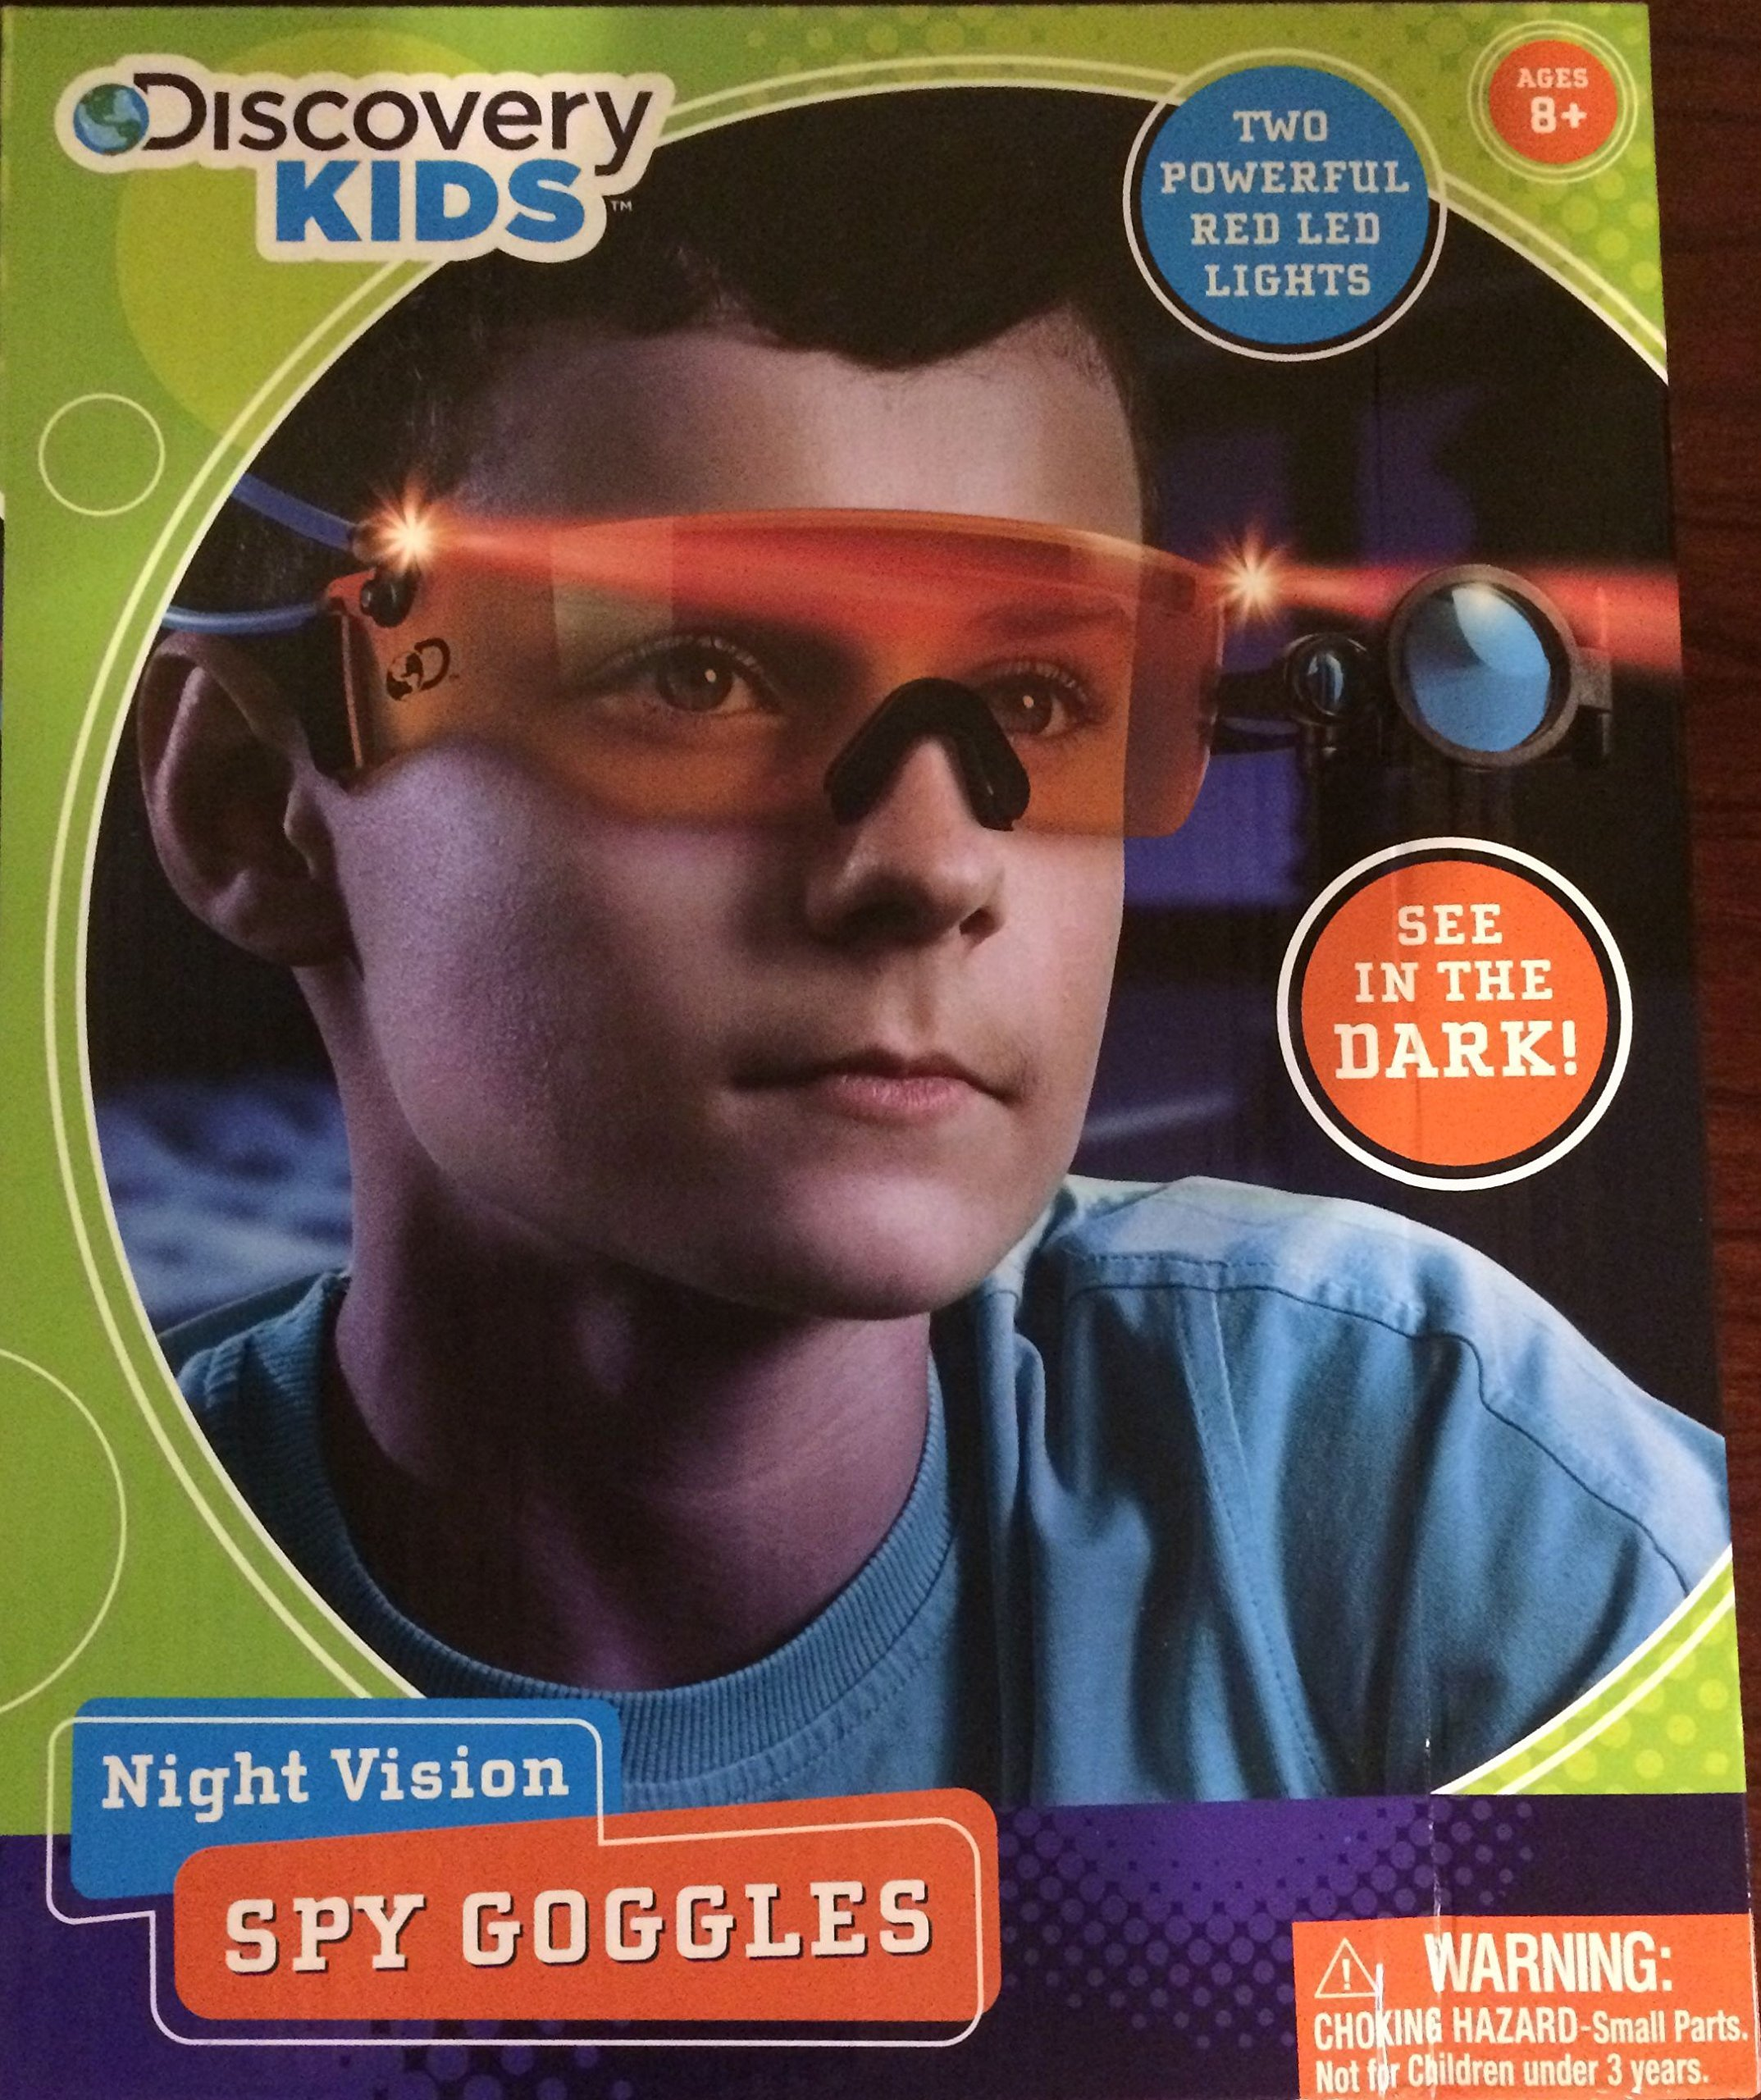 Night Vision Spy Goggles by Discovery Kids